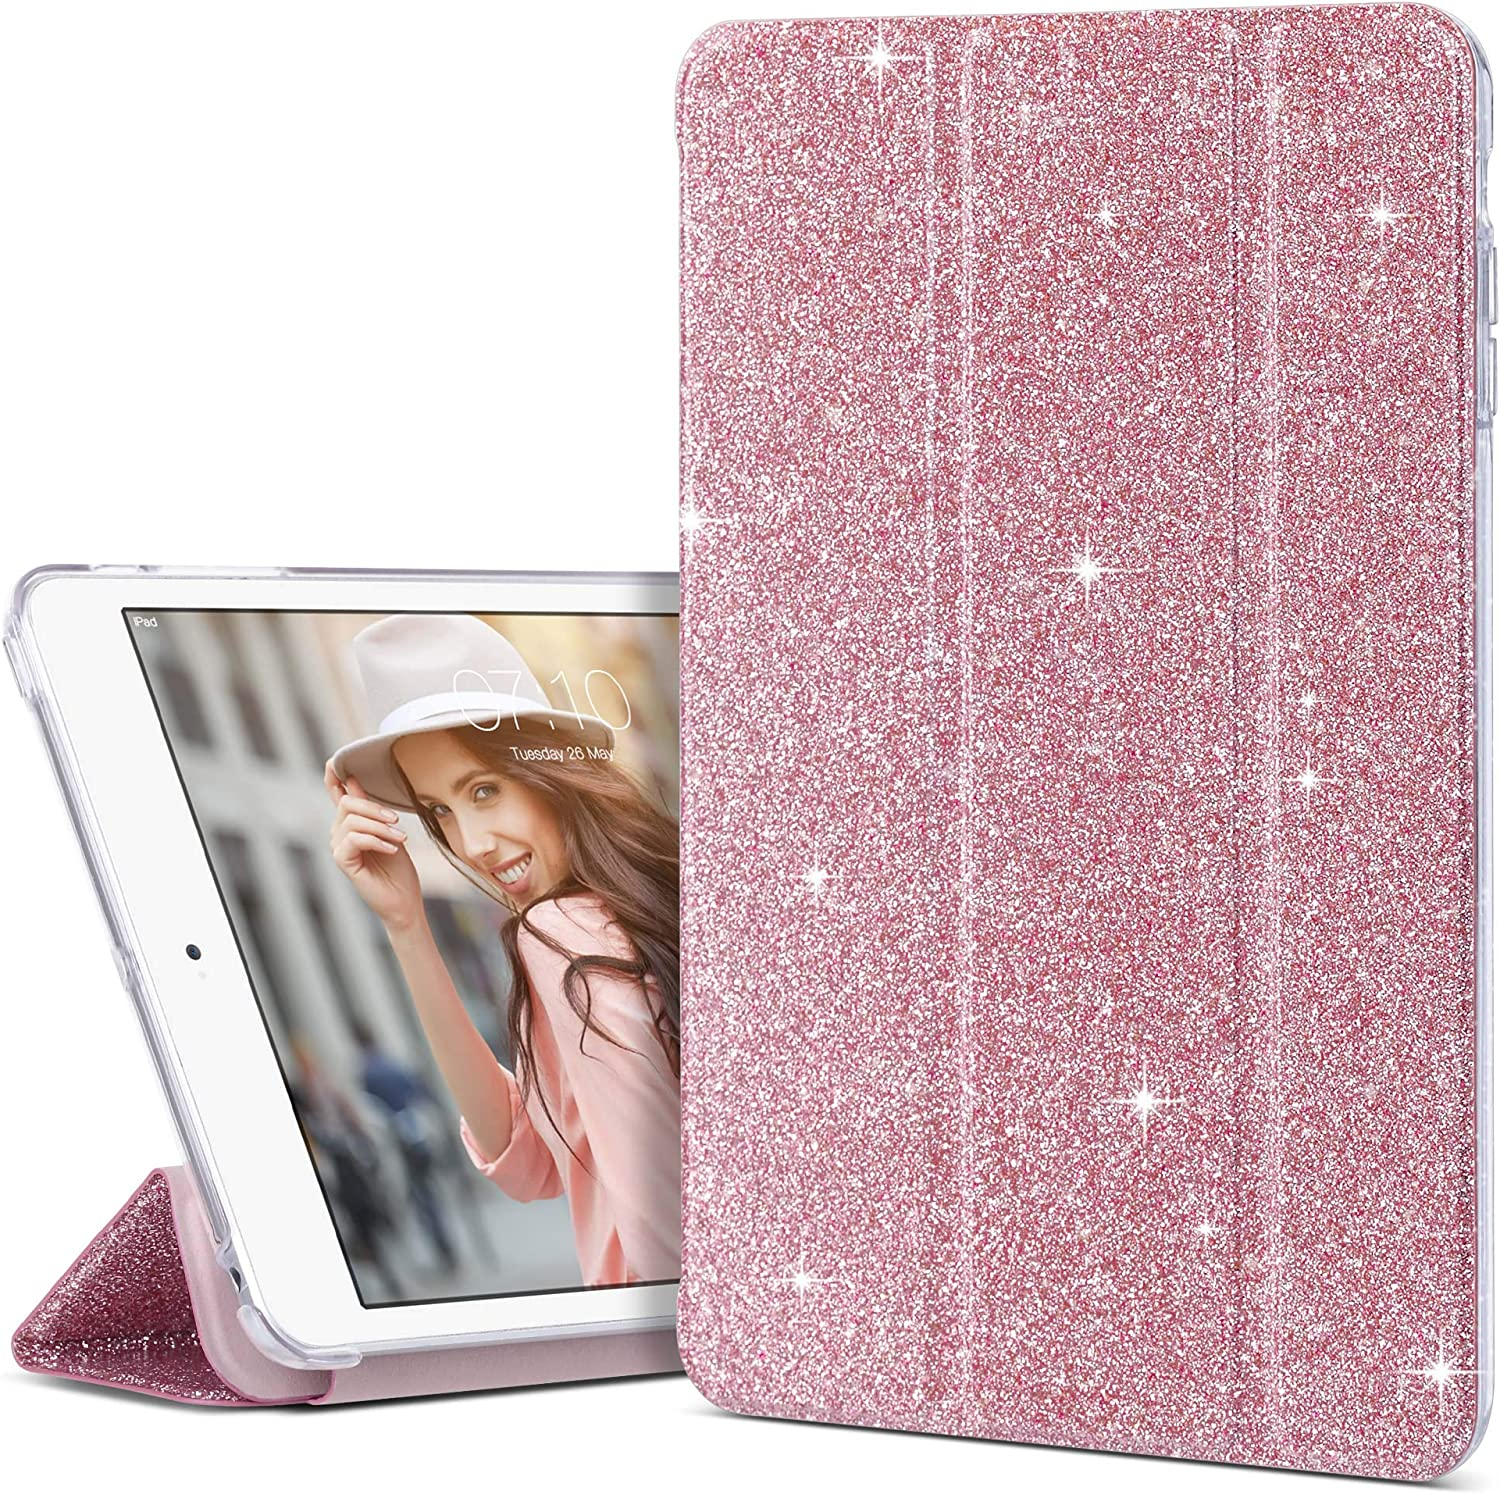 iPad Mini 3 Case, iPad Mini 2 Case, iPad Mini Case, ULAK Bling Sparkly Trifold Stand Smart Cover for Apple iPad Mini 1/2/3 Clear Back Cover Lightweight with Auto Sleep/Wake Function,Glitter Pink